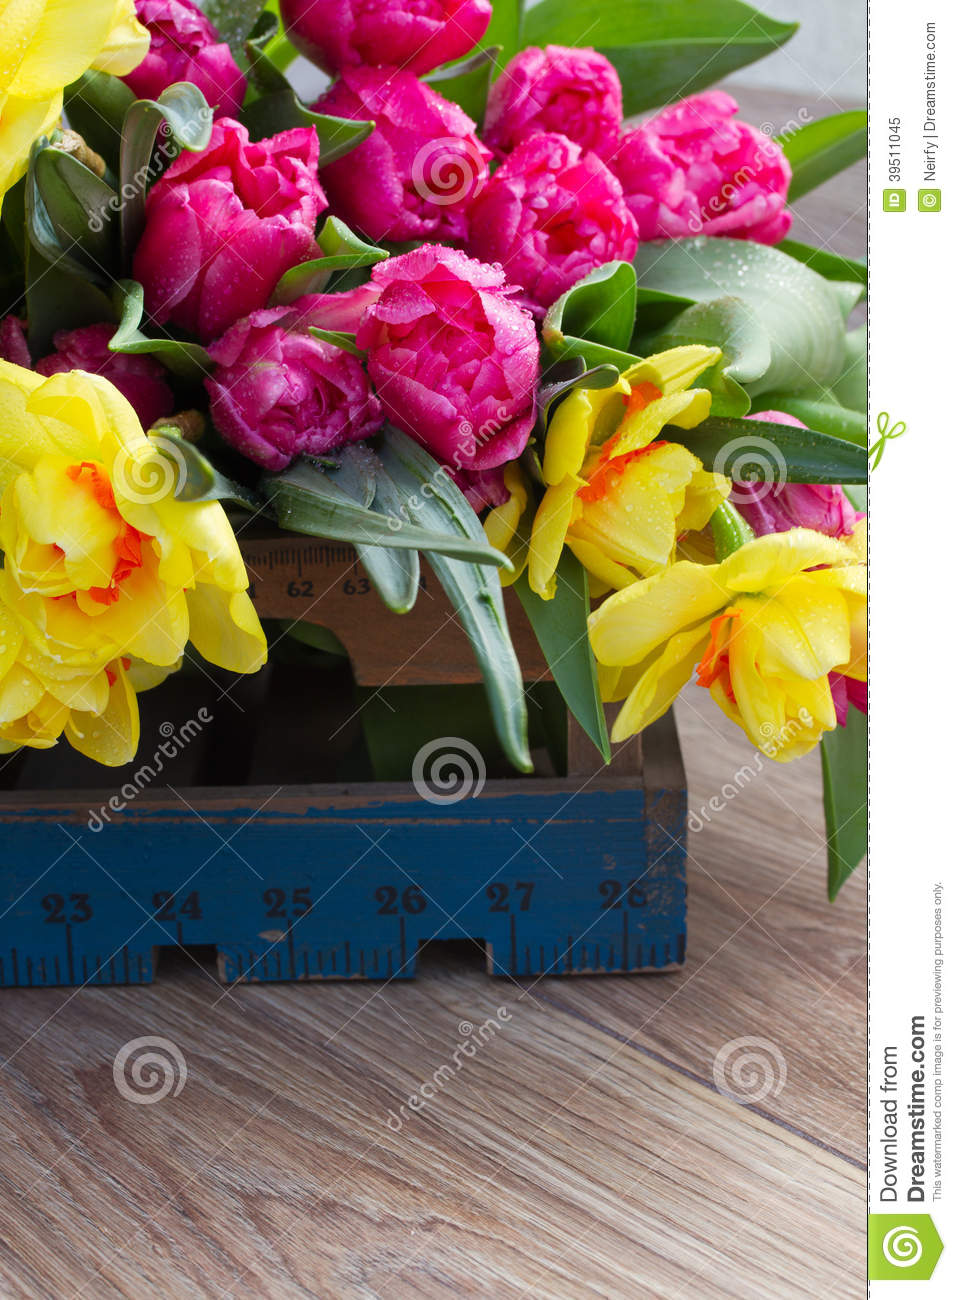 Spring tulips and daffodils in wooden crate